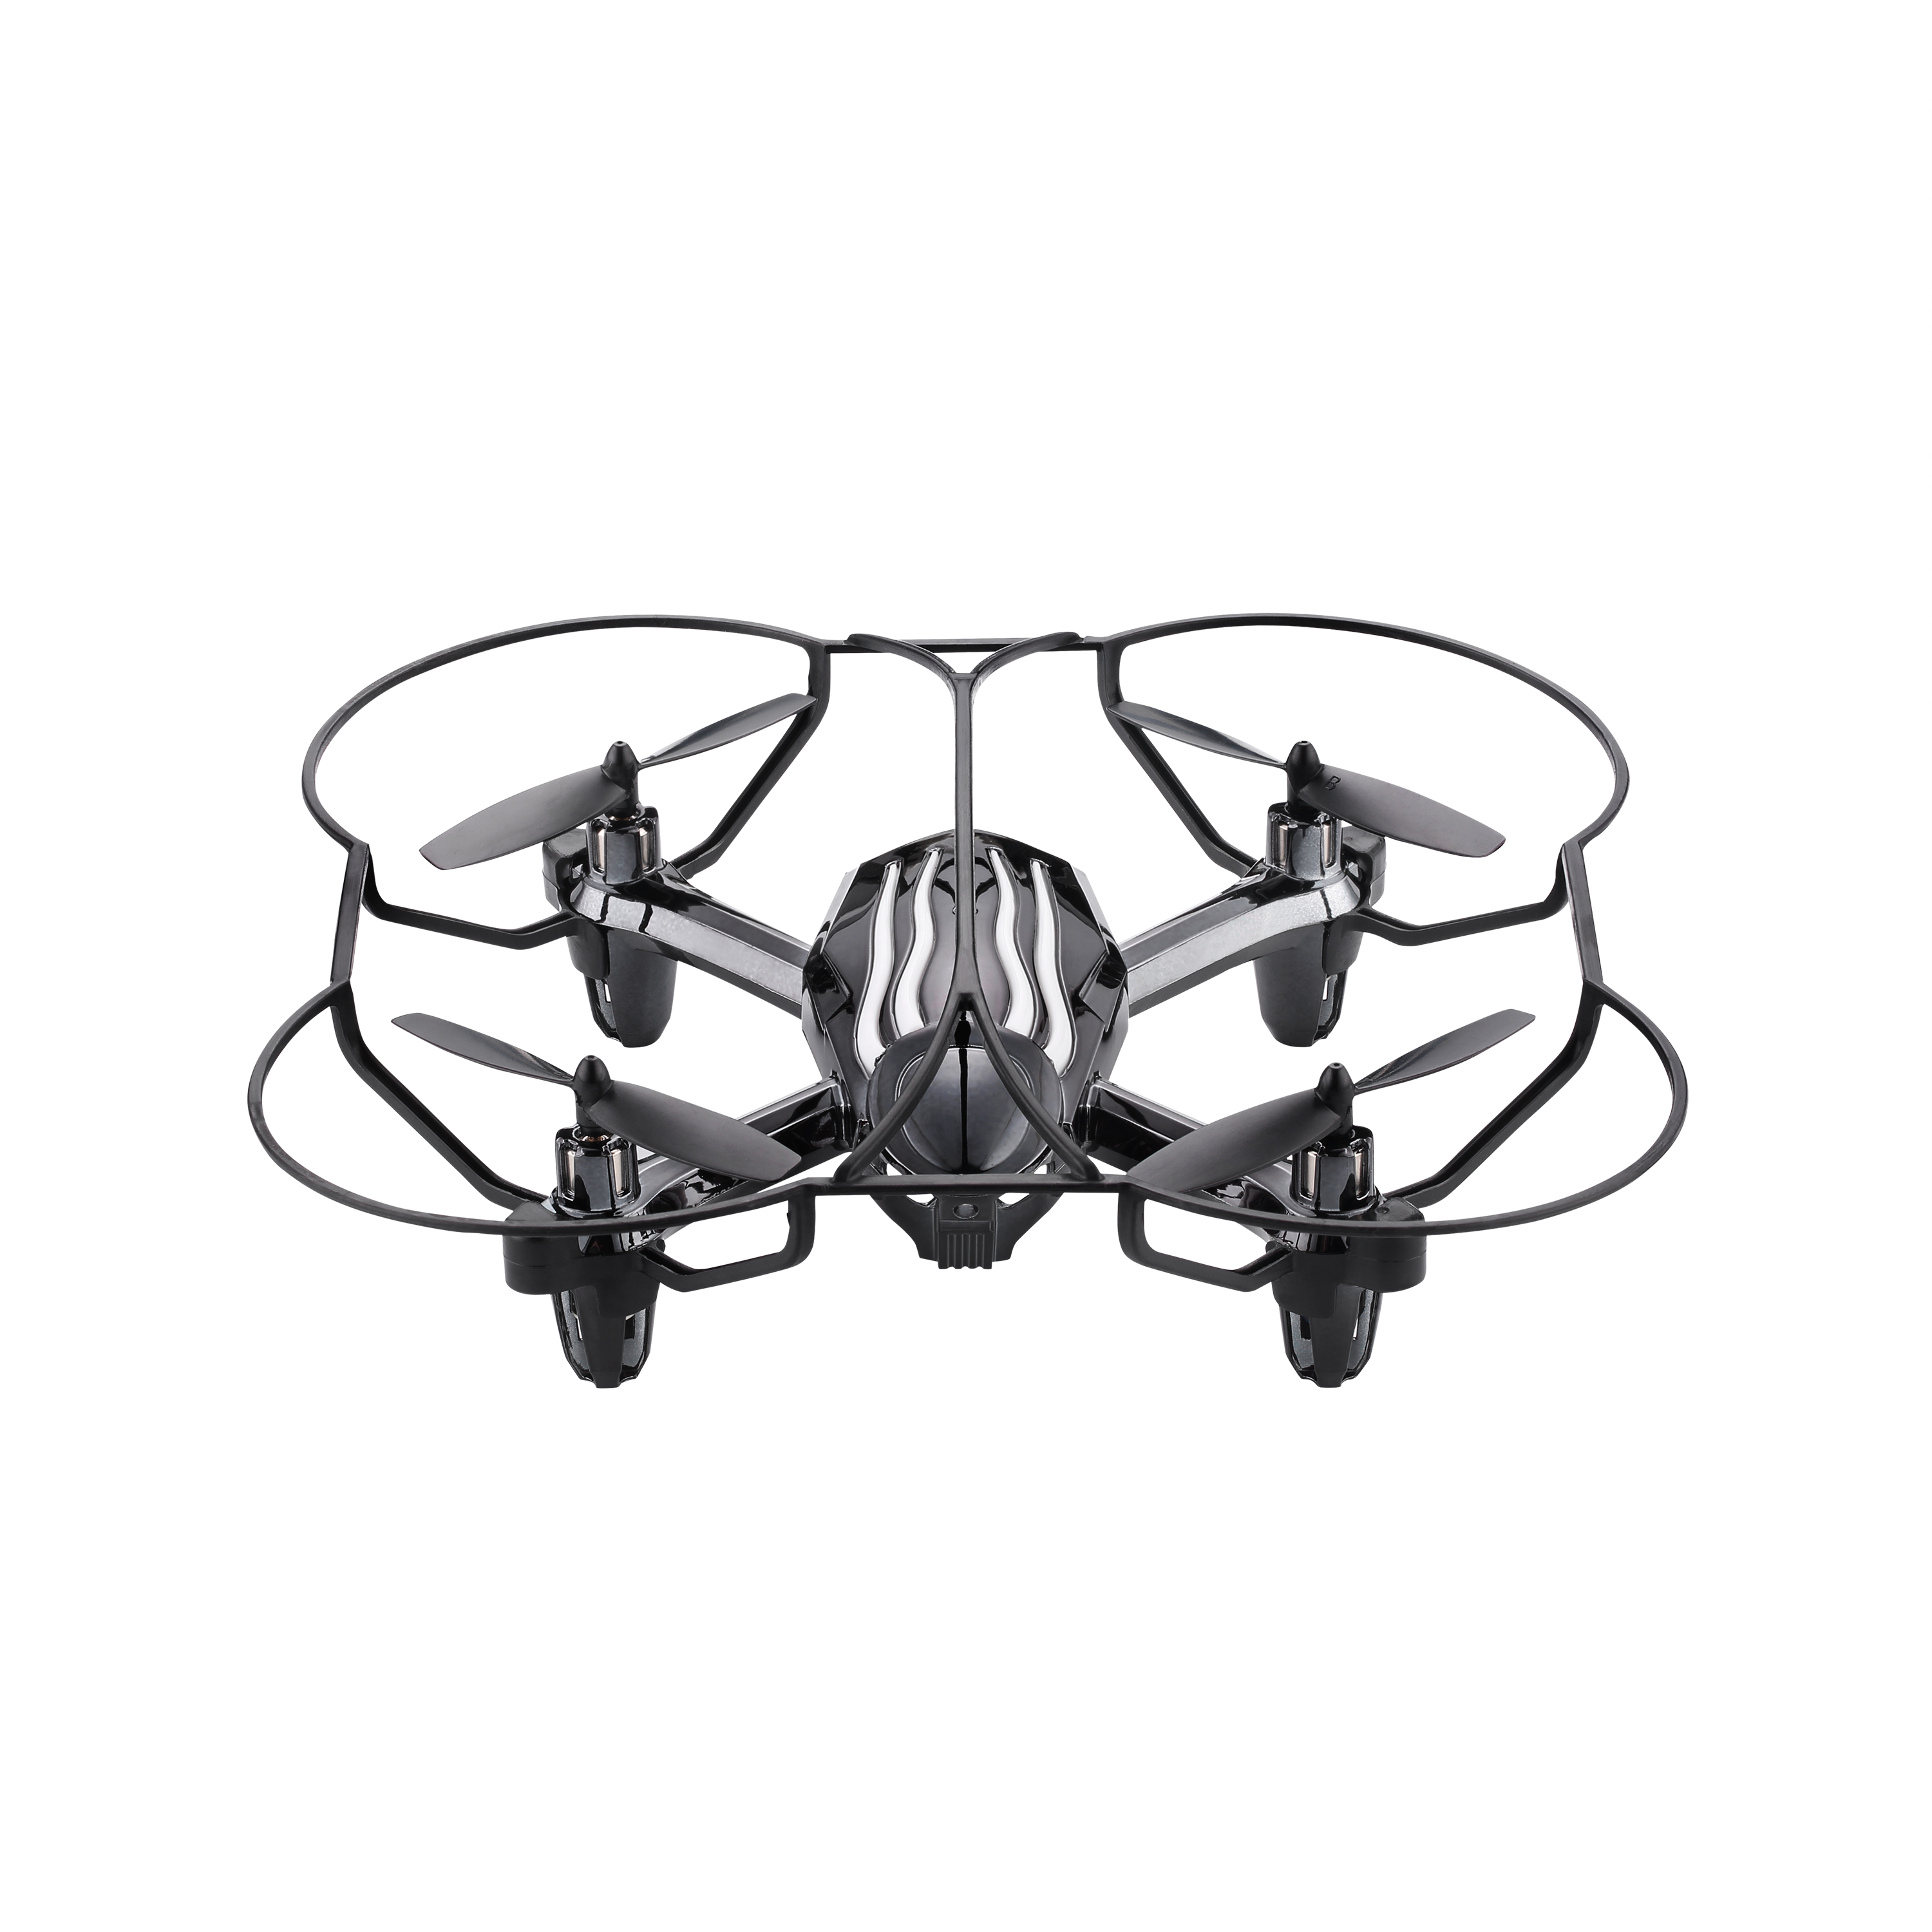 Propel Spyder X Palm Sized High Performance Stunt Drone